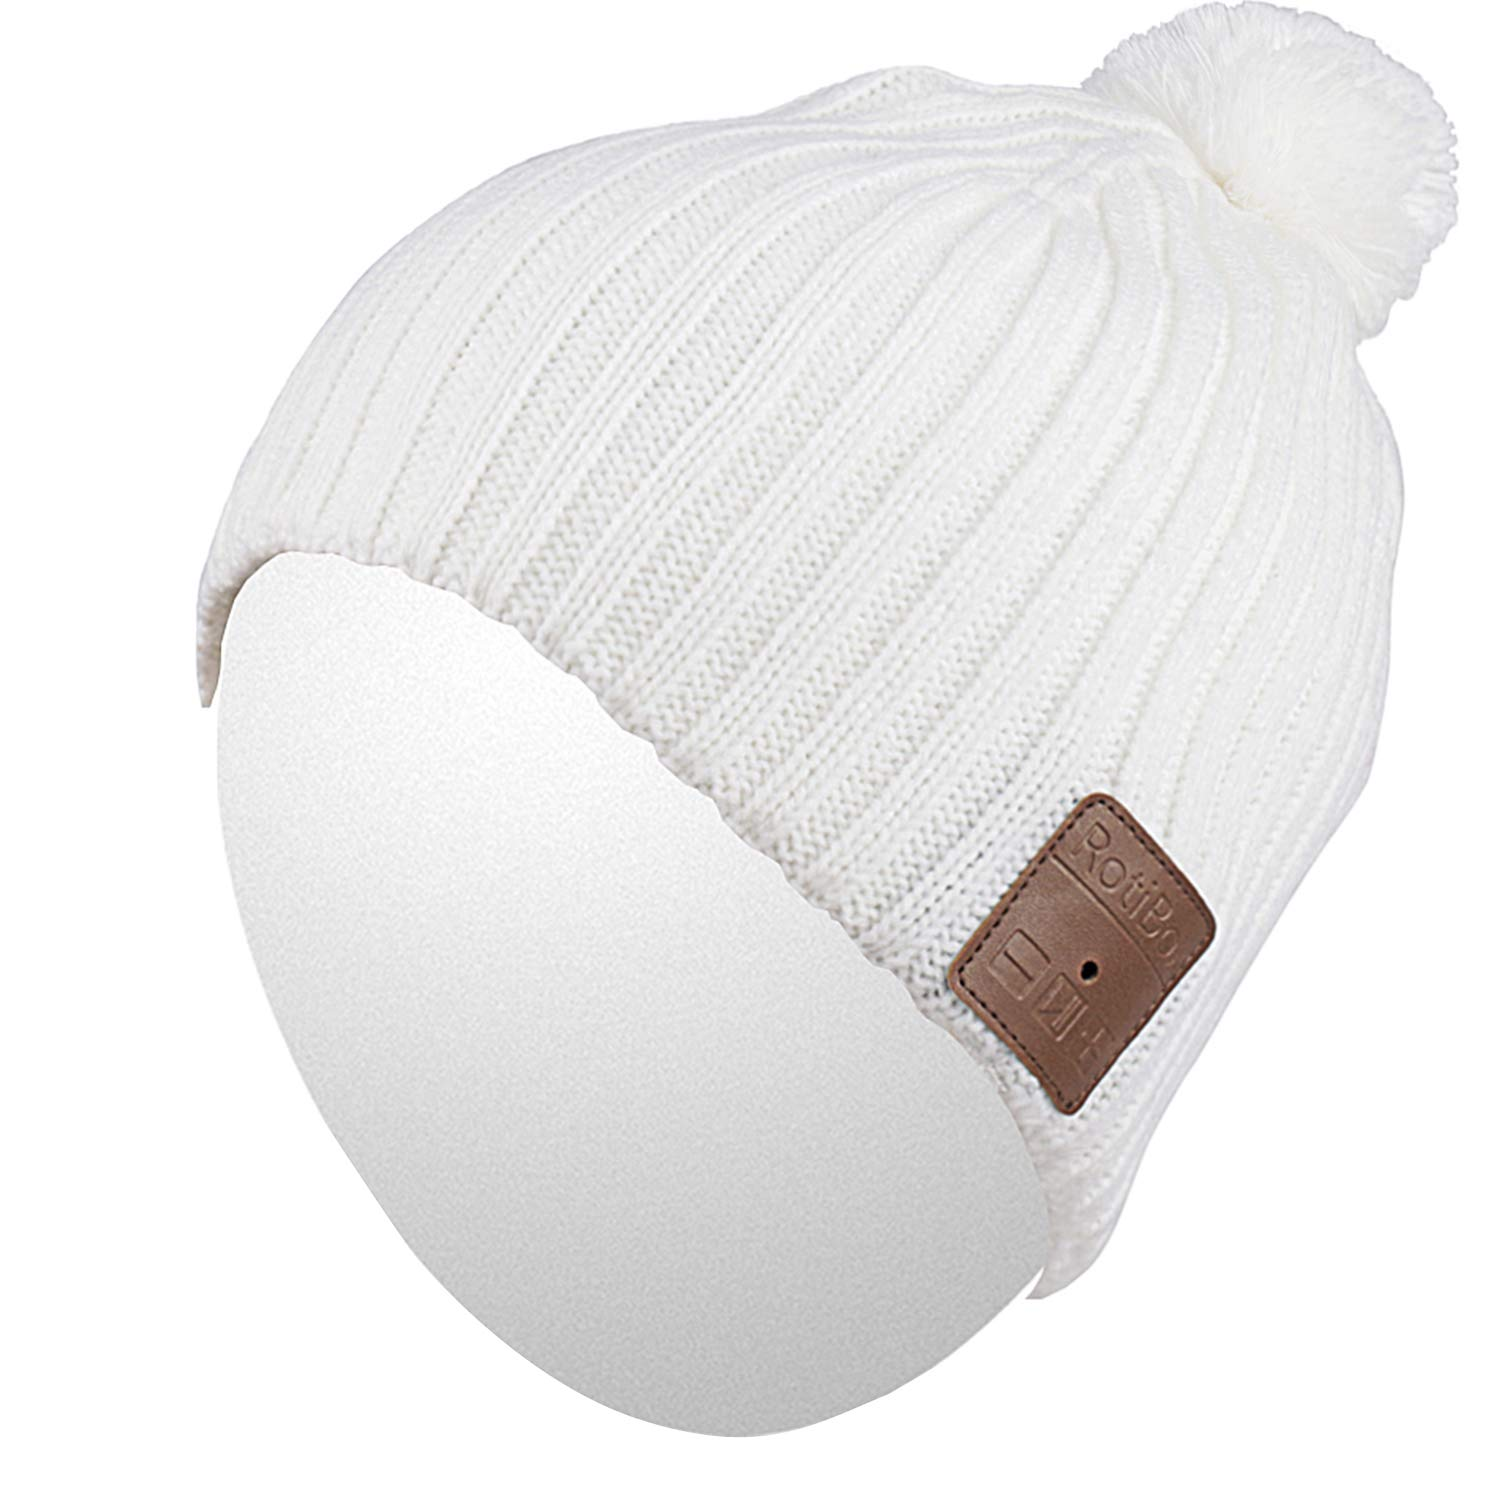 Qshell Unisex Adult Bluetooth Beanie Hat Trendy Soft Warm Short Audio Music Cap with Wireless Headphone Headset Speaker Mic Hands-Free, for Winter Outdoor Sport Skiing Snowboard - White